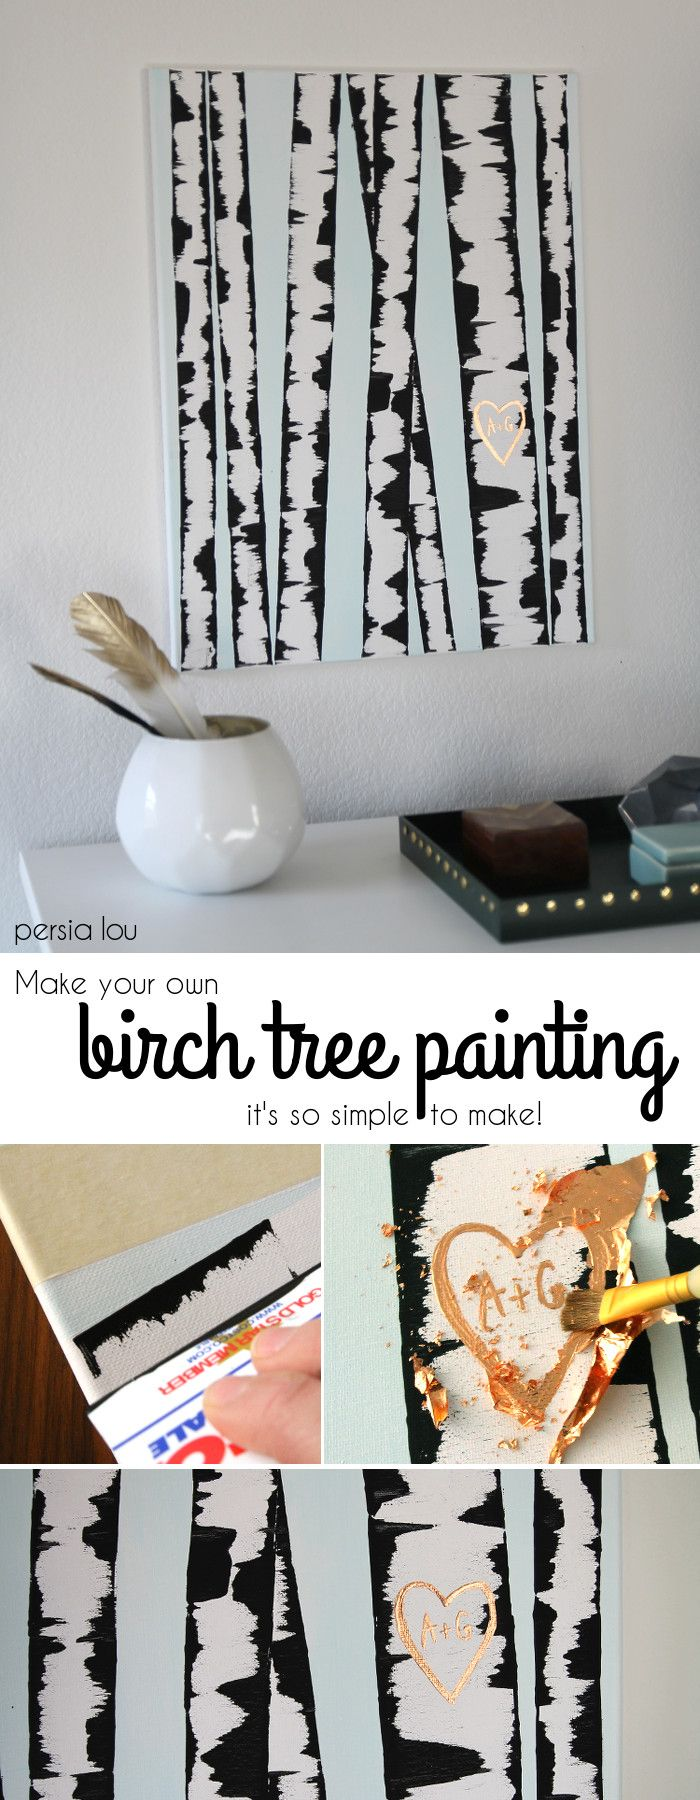 17 best ideas about diy wall art on pinterest diy wall decor canvas crafts and diy art